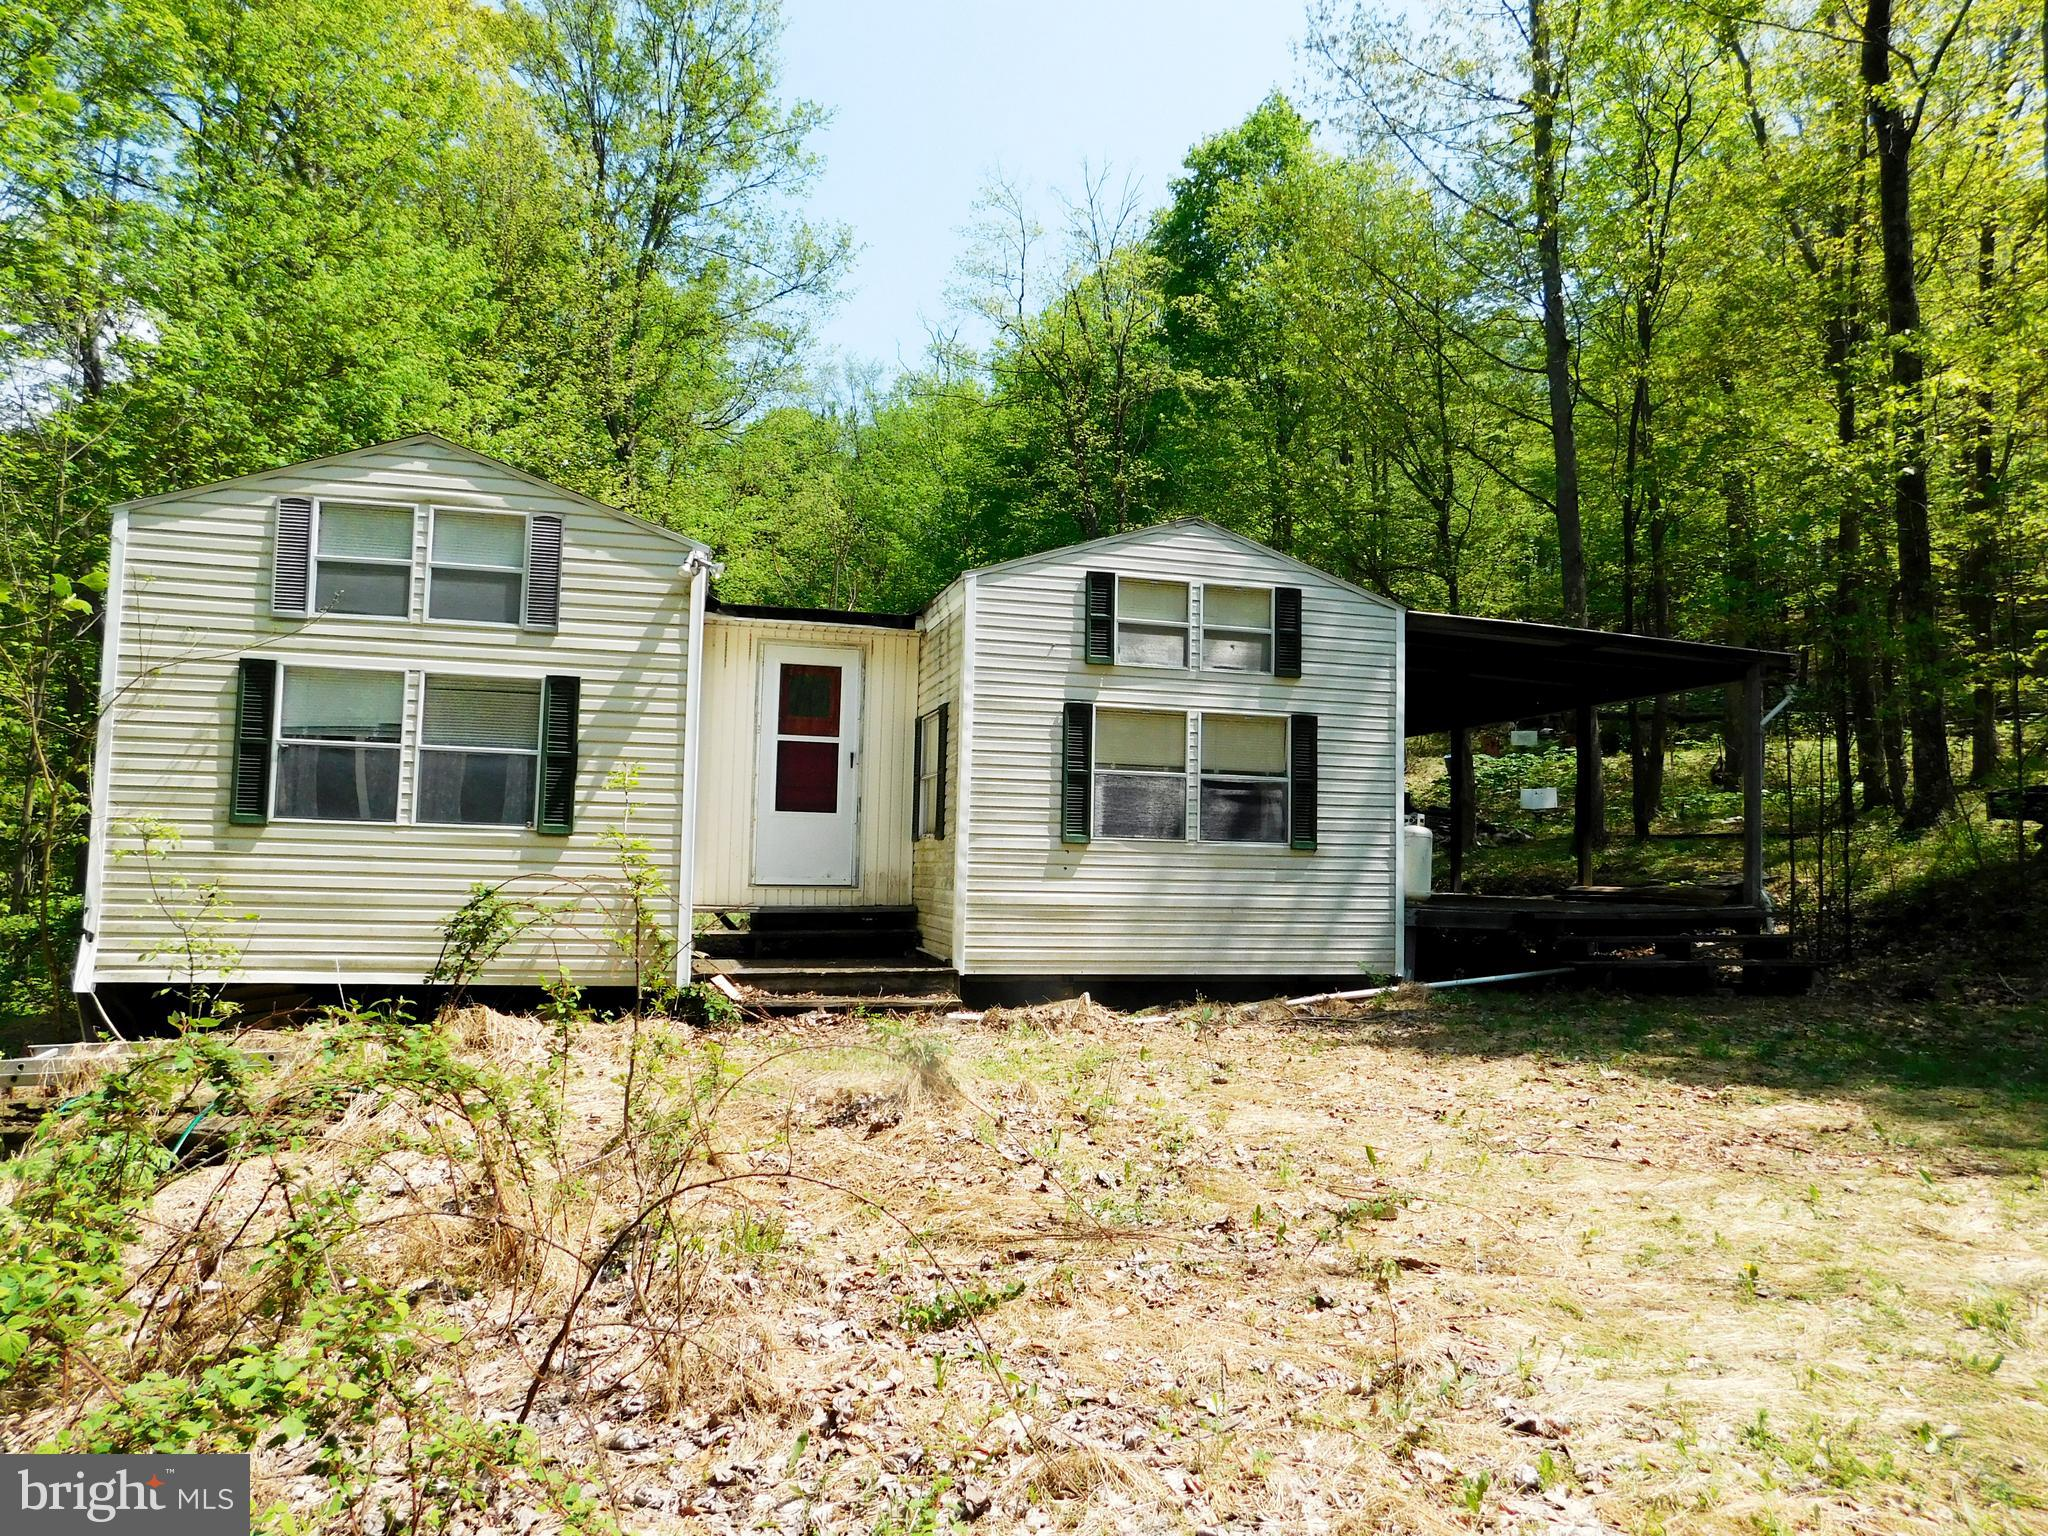 19200 OLIVER BELTZ ROAD, FLINTSTONE, MD 21530